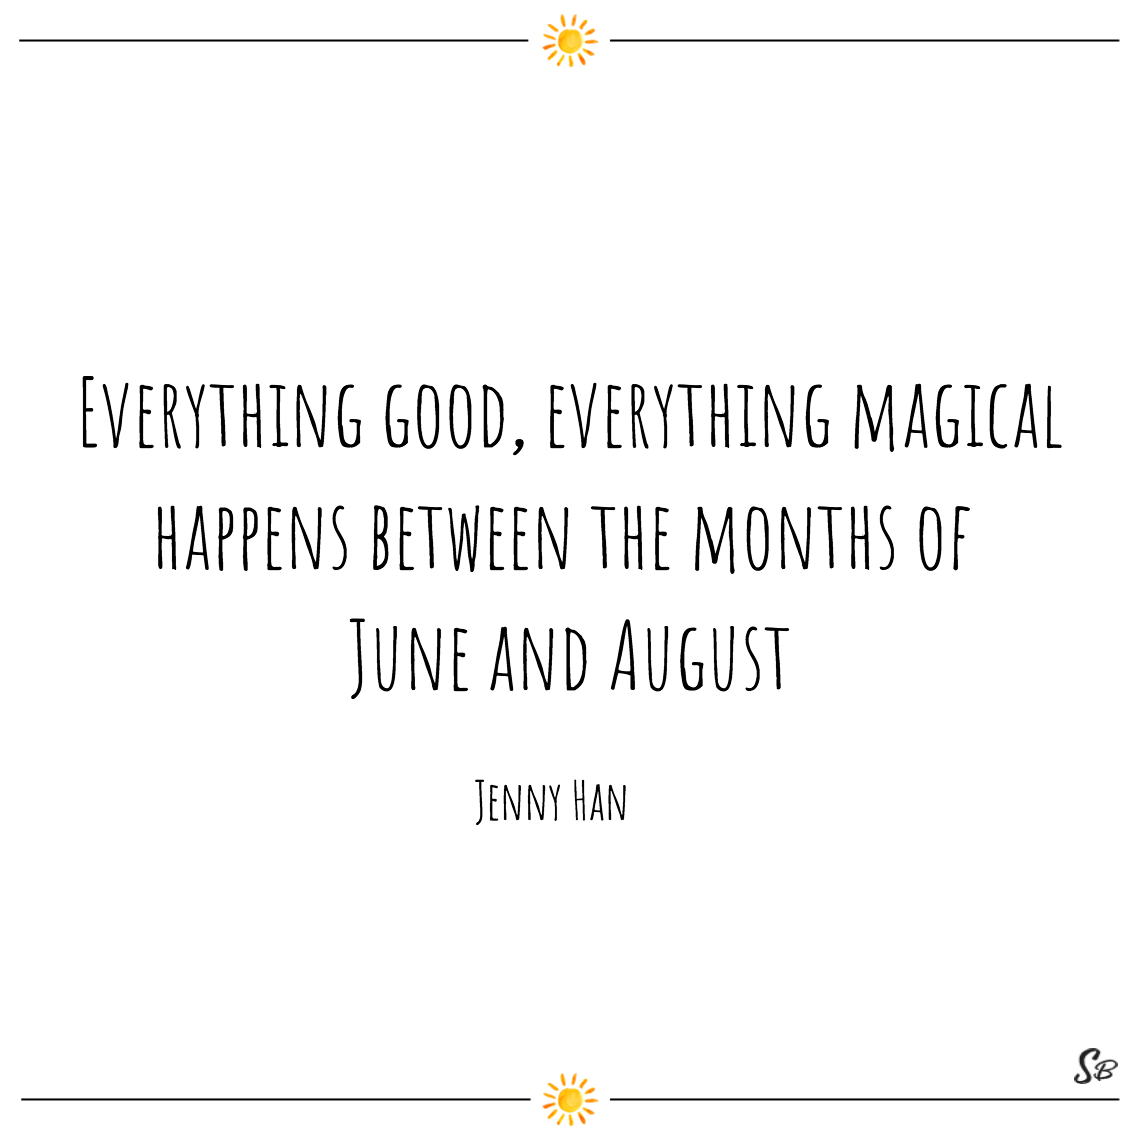 Superbe Everything Good, Everything Magical Happens Between The Months Of June And  August Jenny Han (